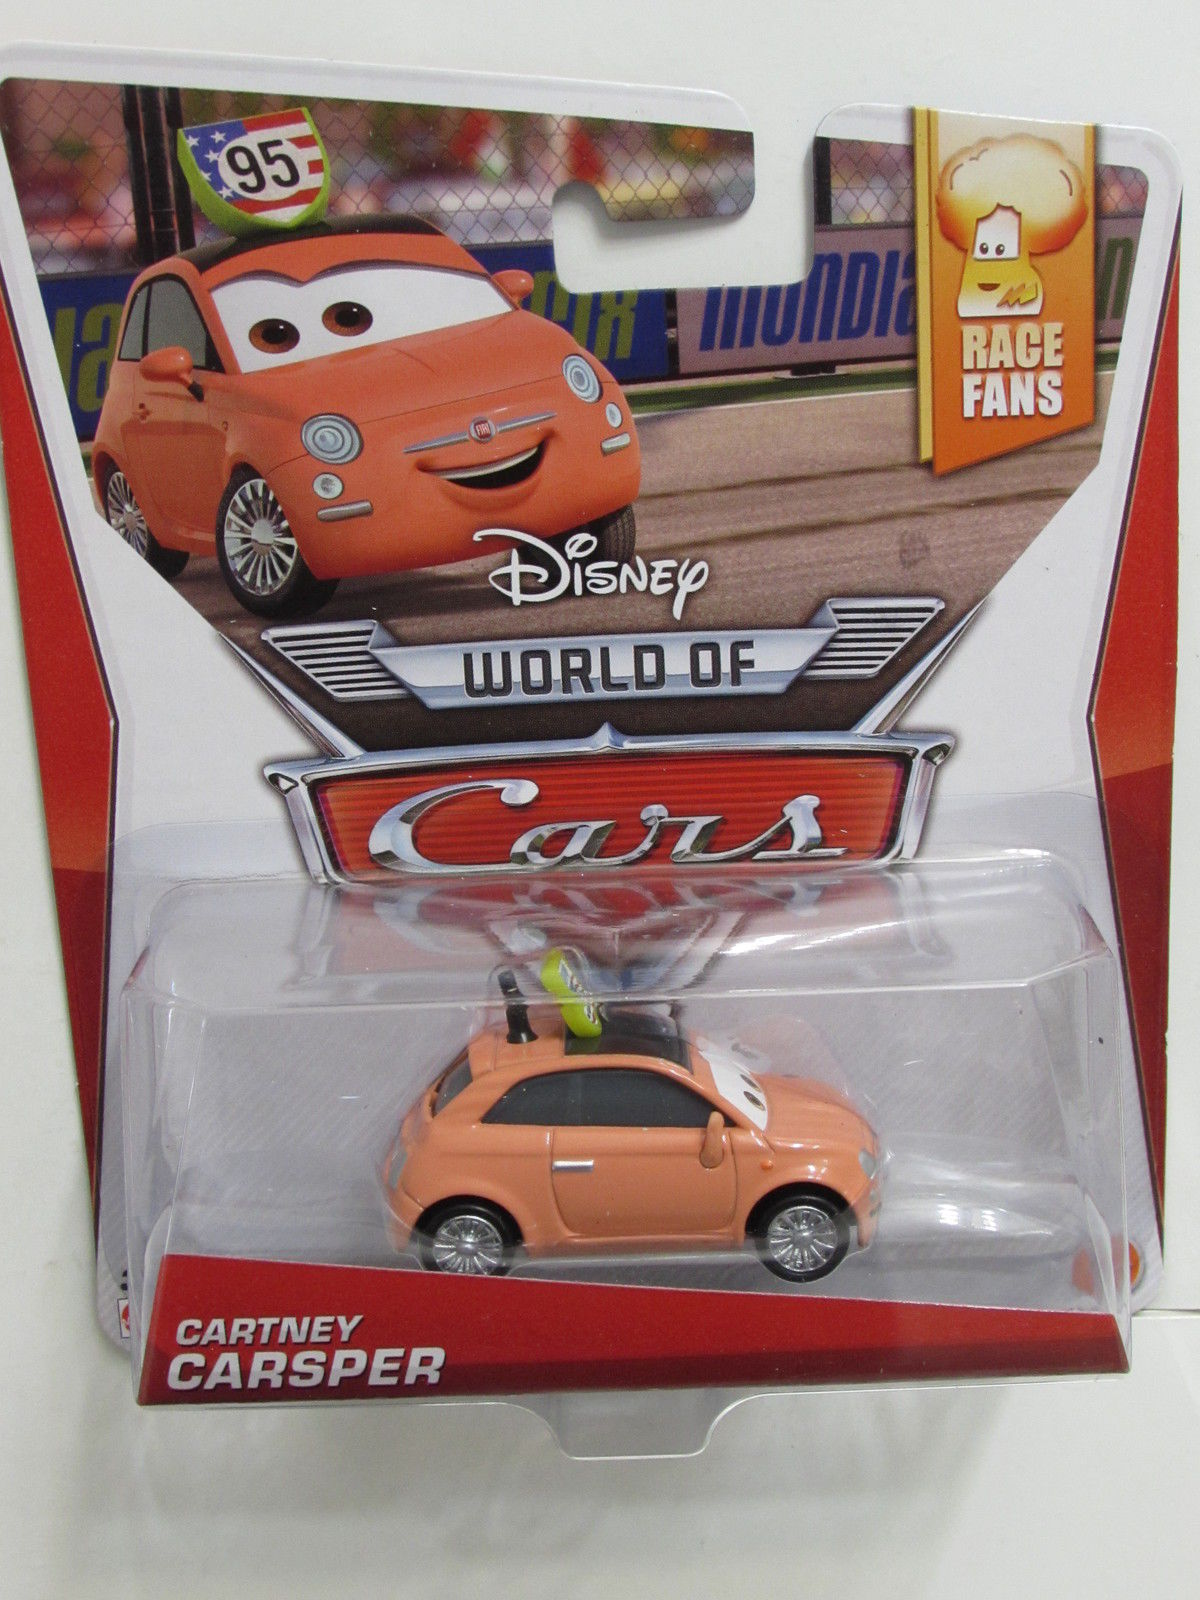 DISNEY PIXAR CARS RACE FANS CARTNEY CARSPER